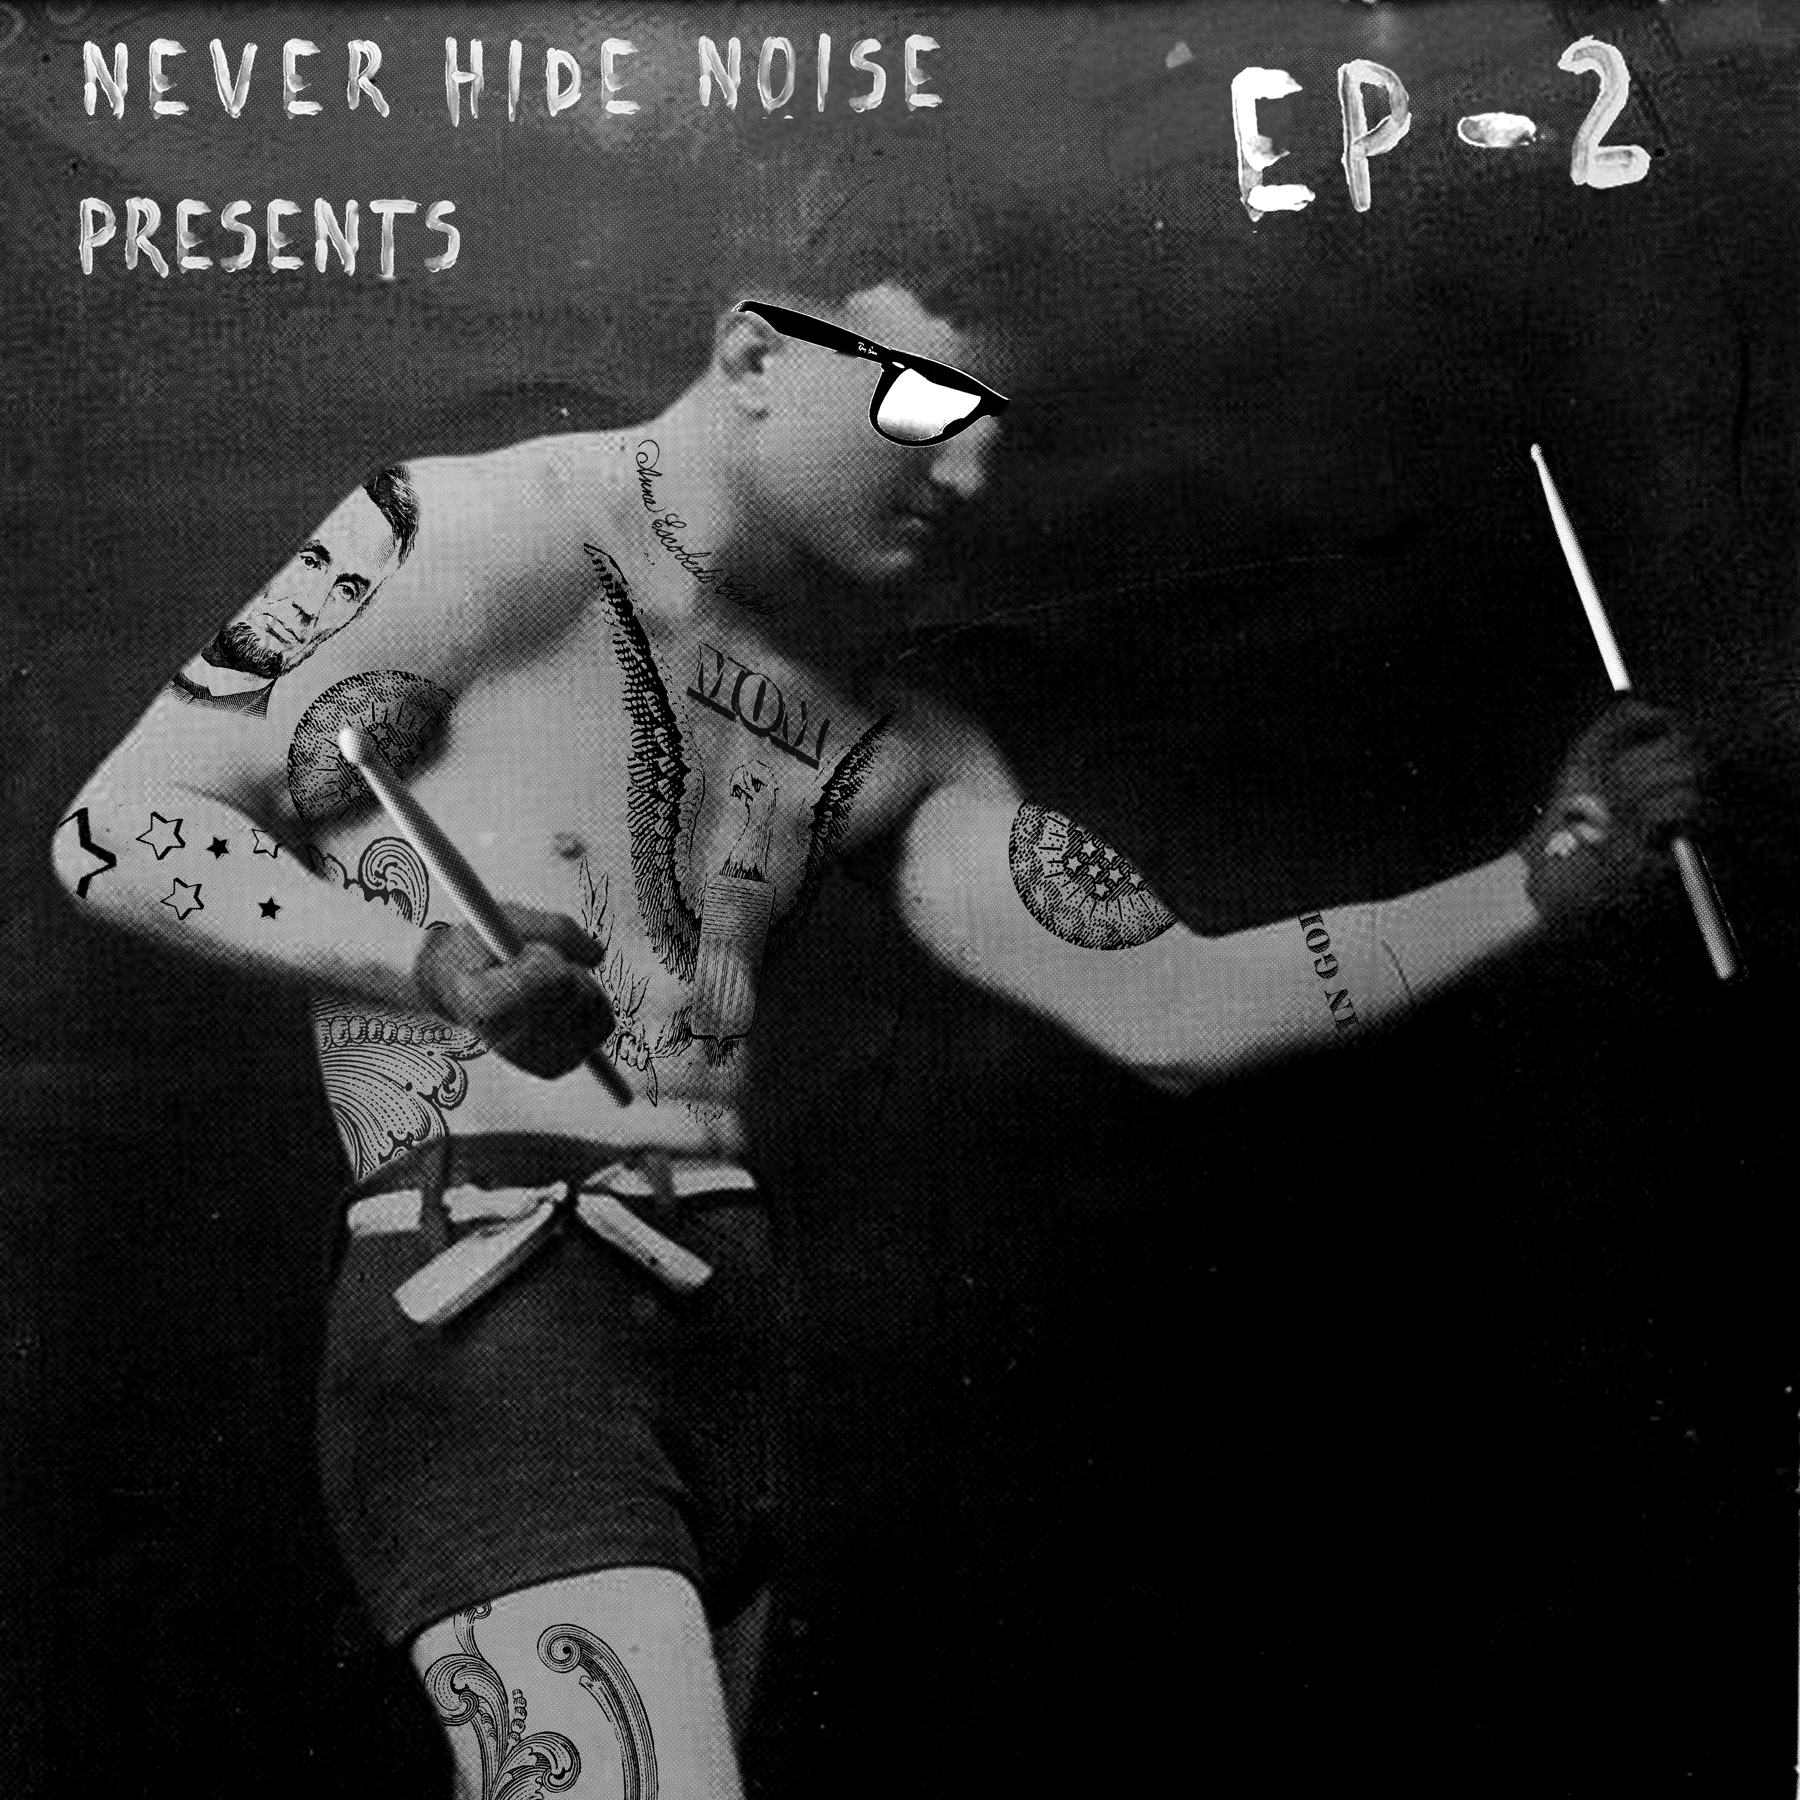 Ray-Ban, Never Hide, Never Hide Noise, EP-2, Drummer